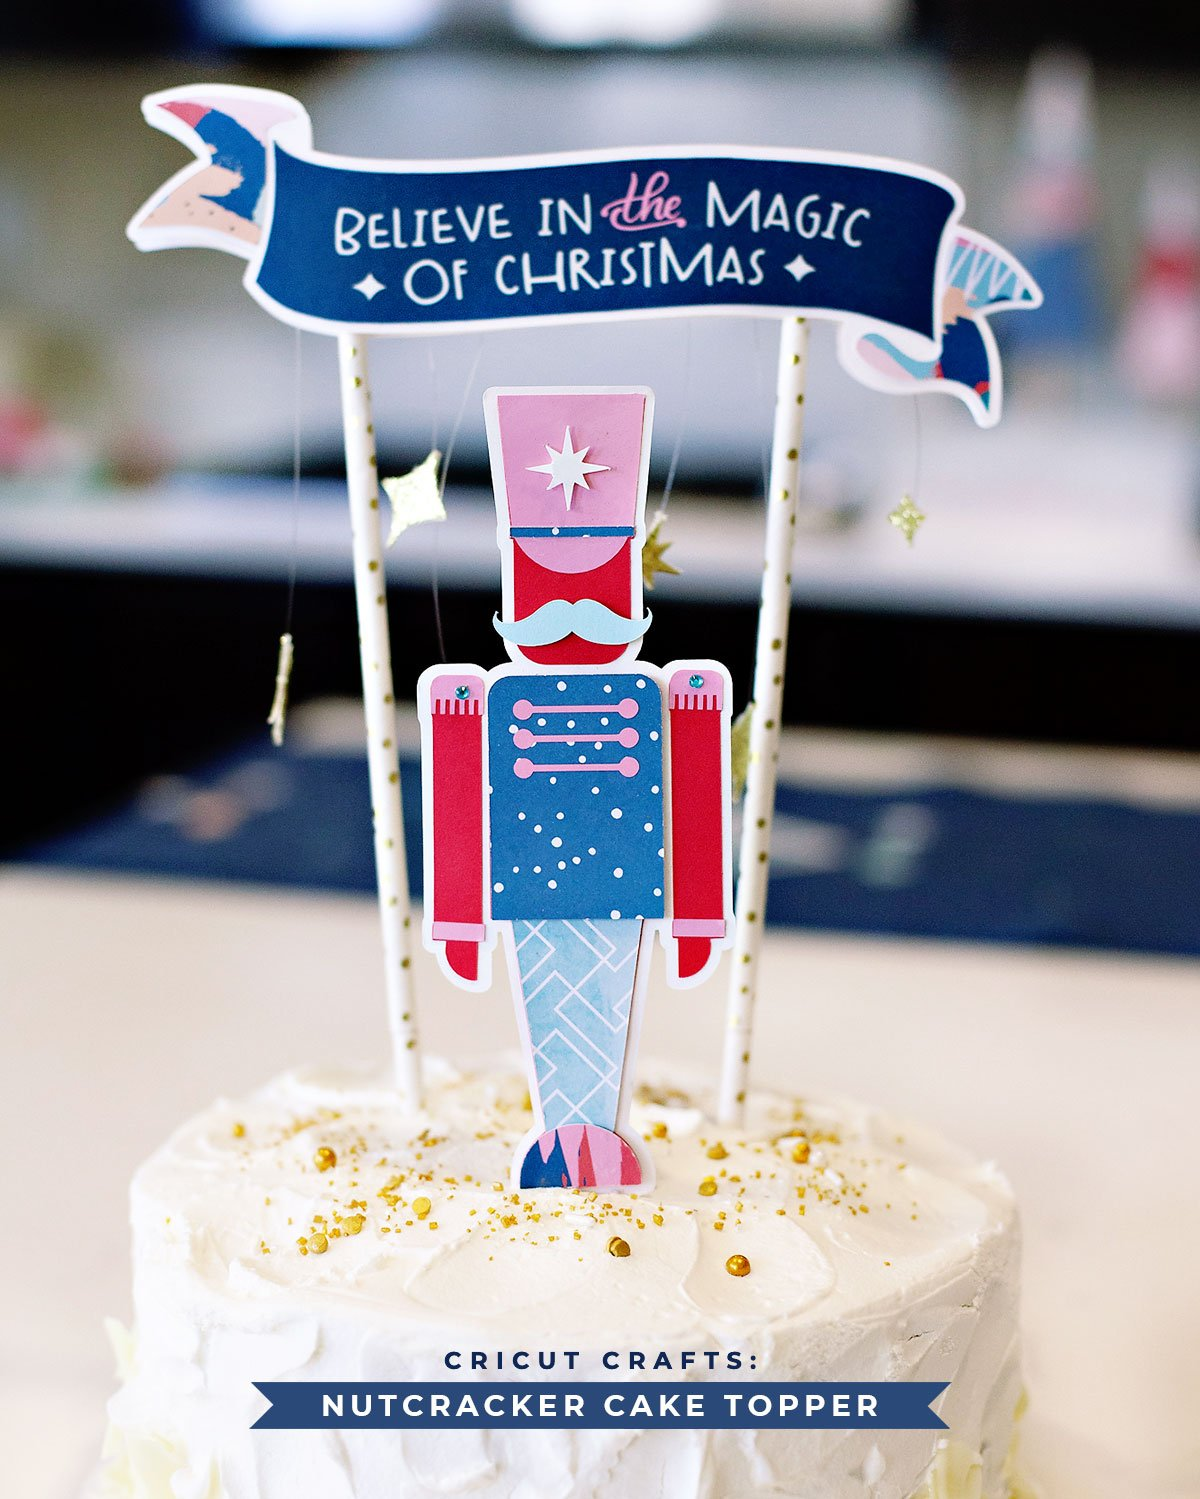 Nutcracker Cake Topper DIY Project